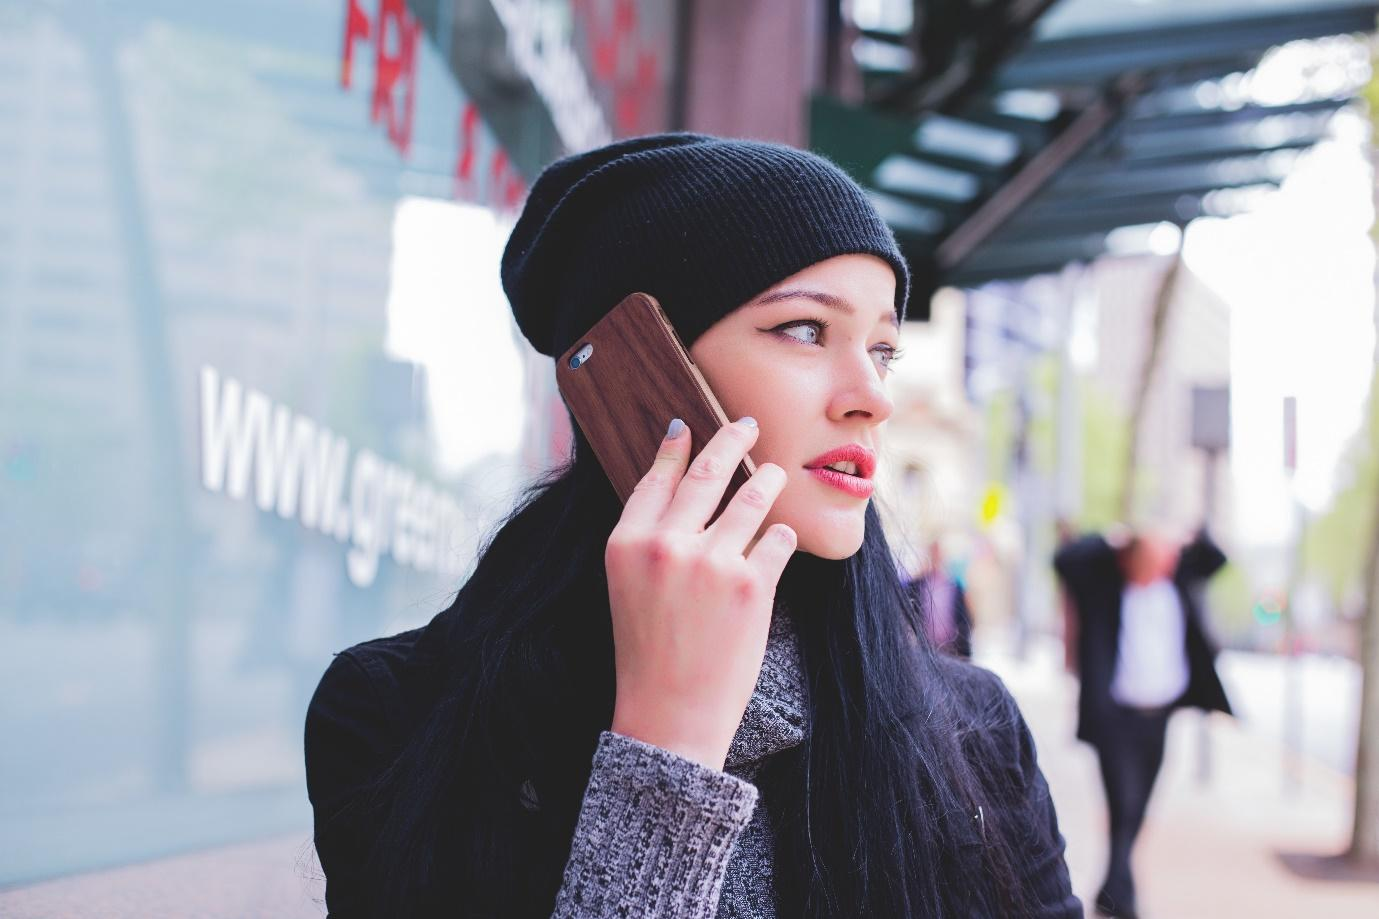 A person wearing a hat talking on a cell phone  Description automatically generated